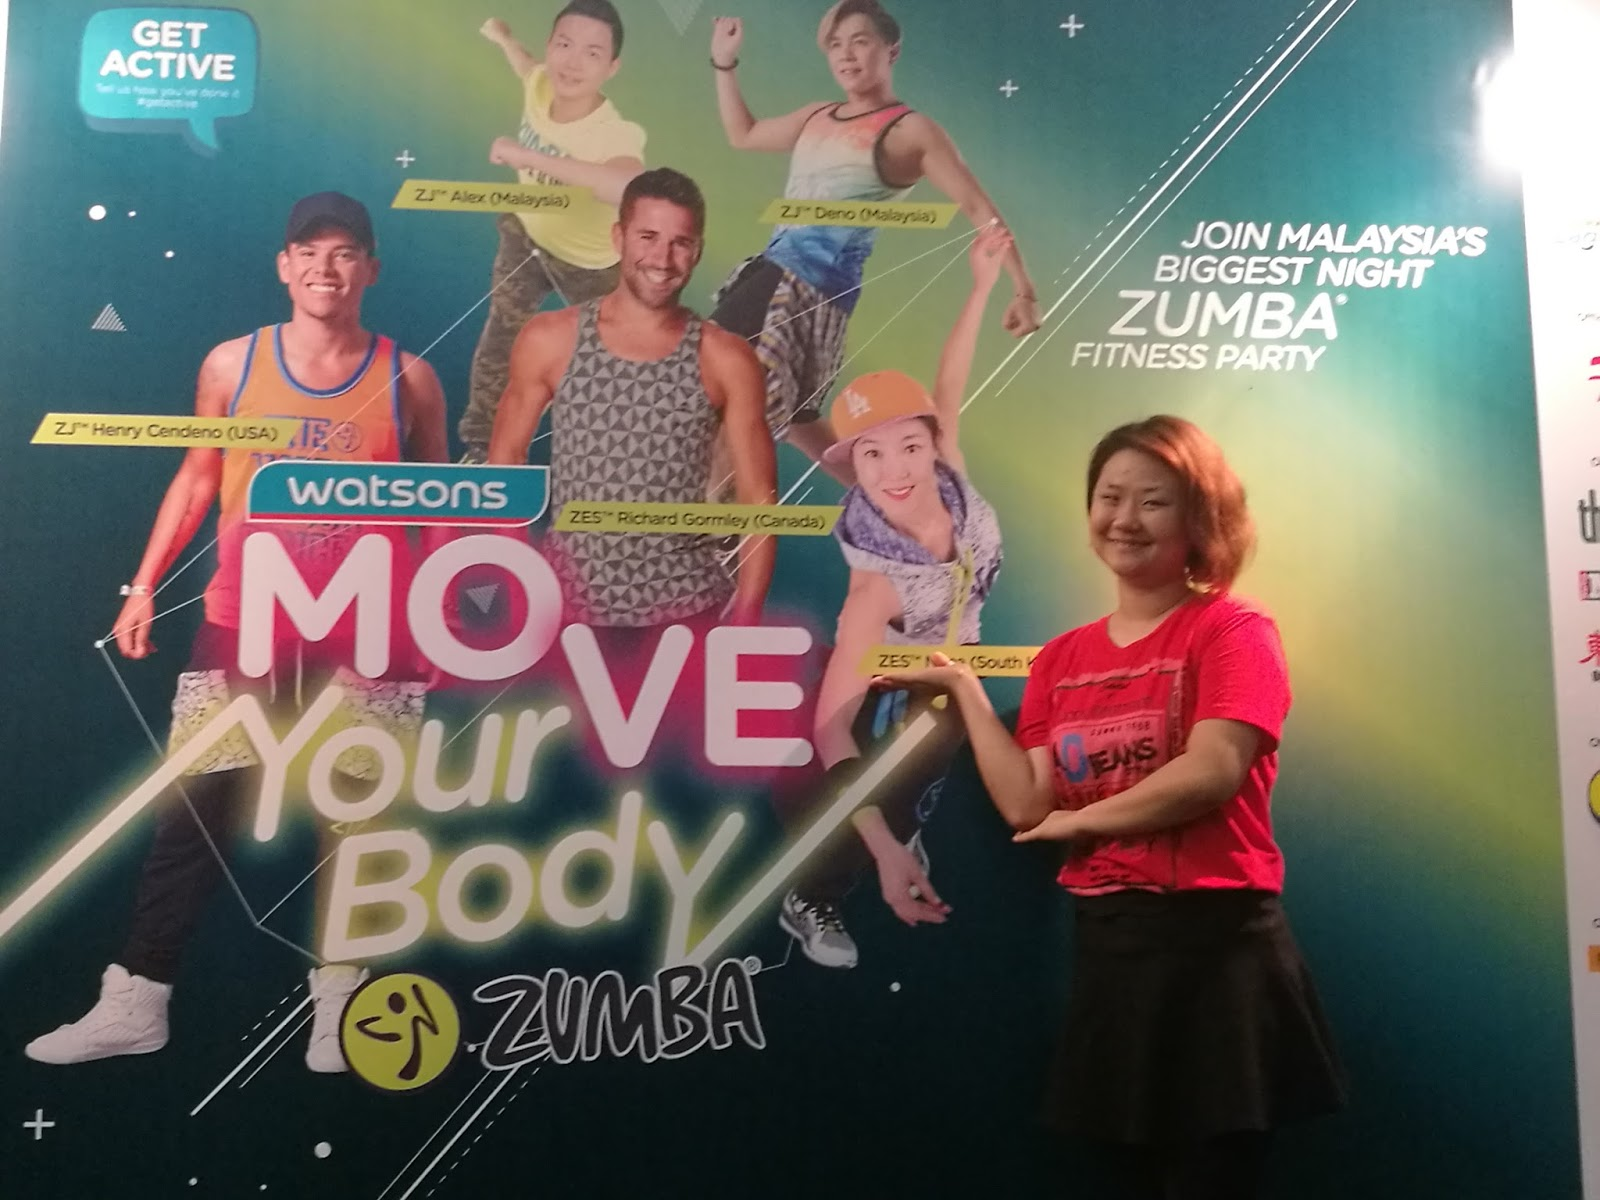 Watsons Move Your Body Zumba 2017 Wendy